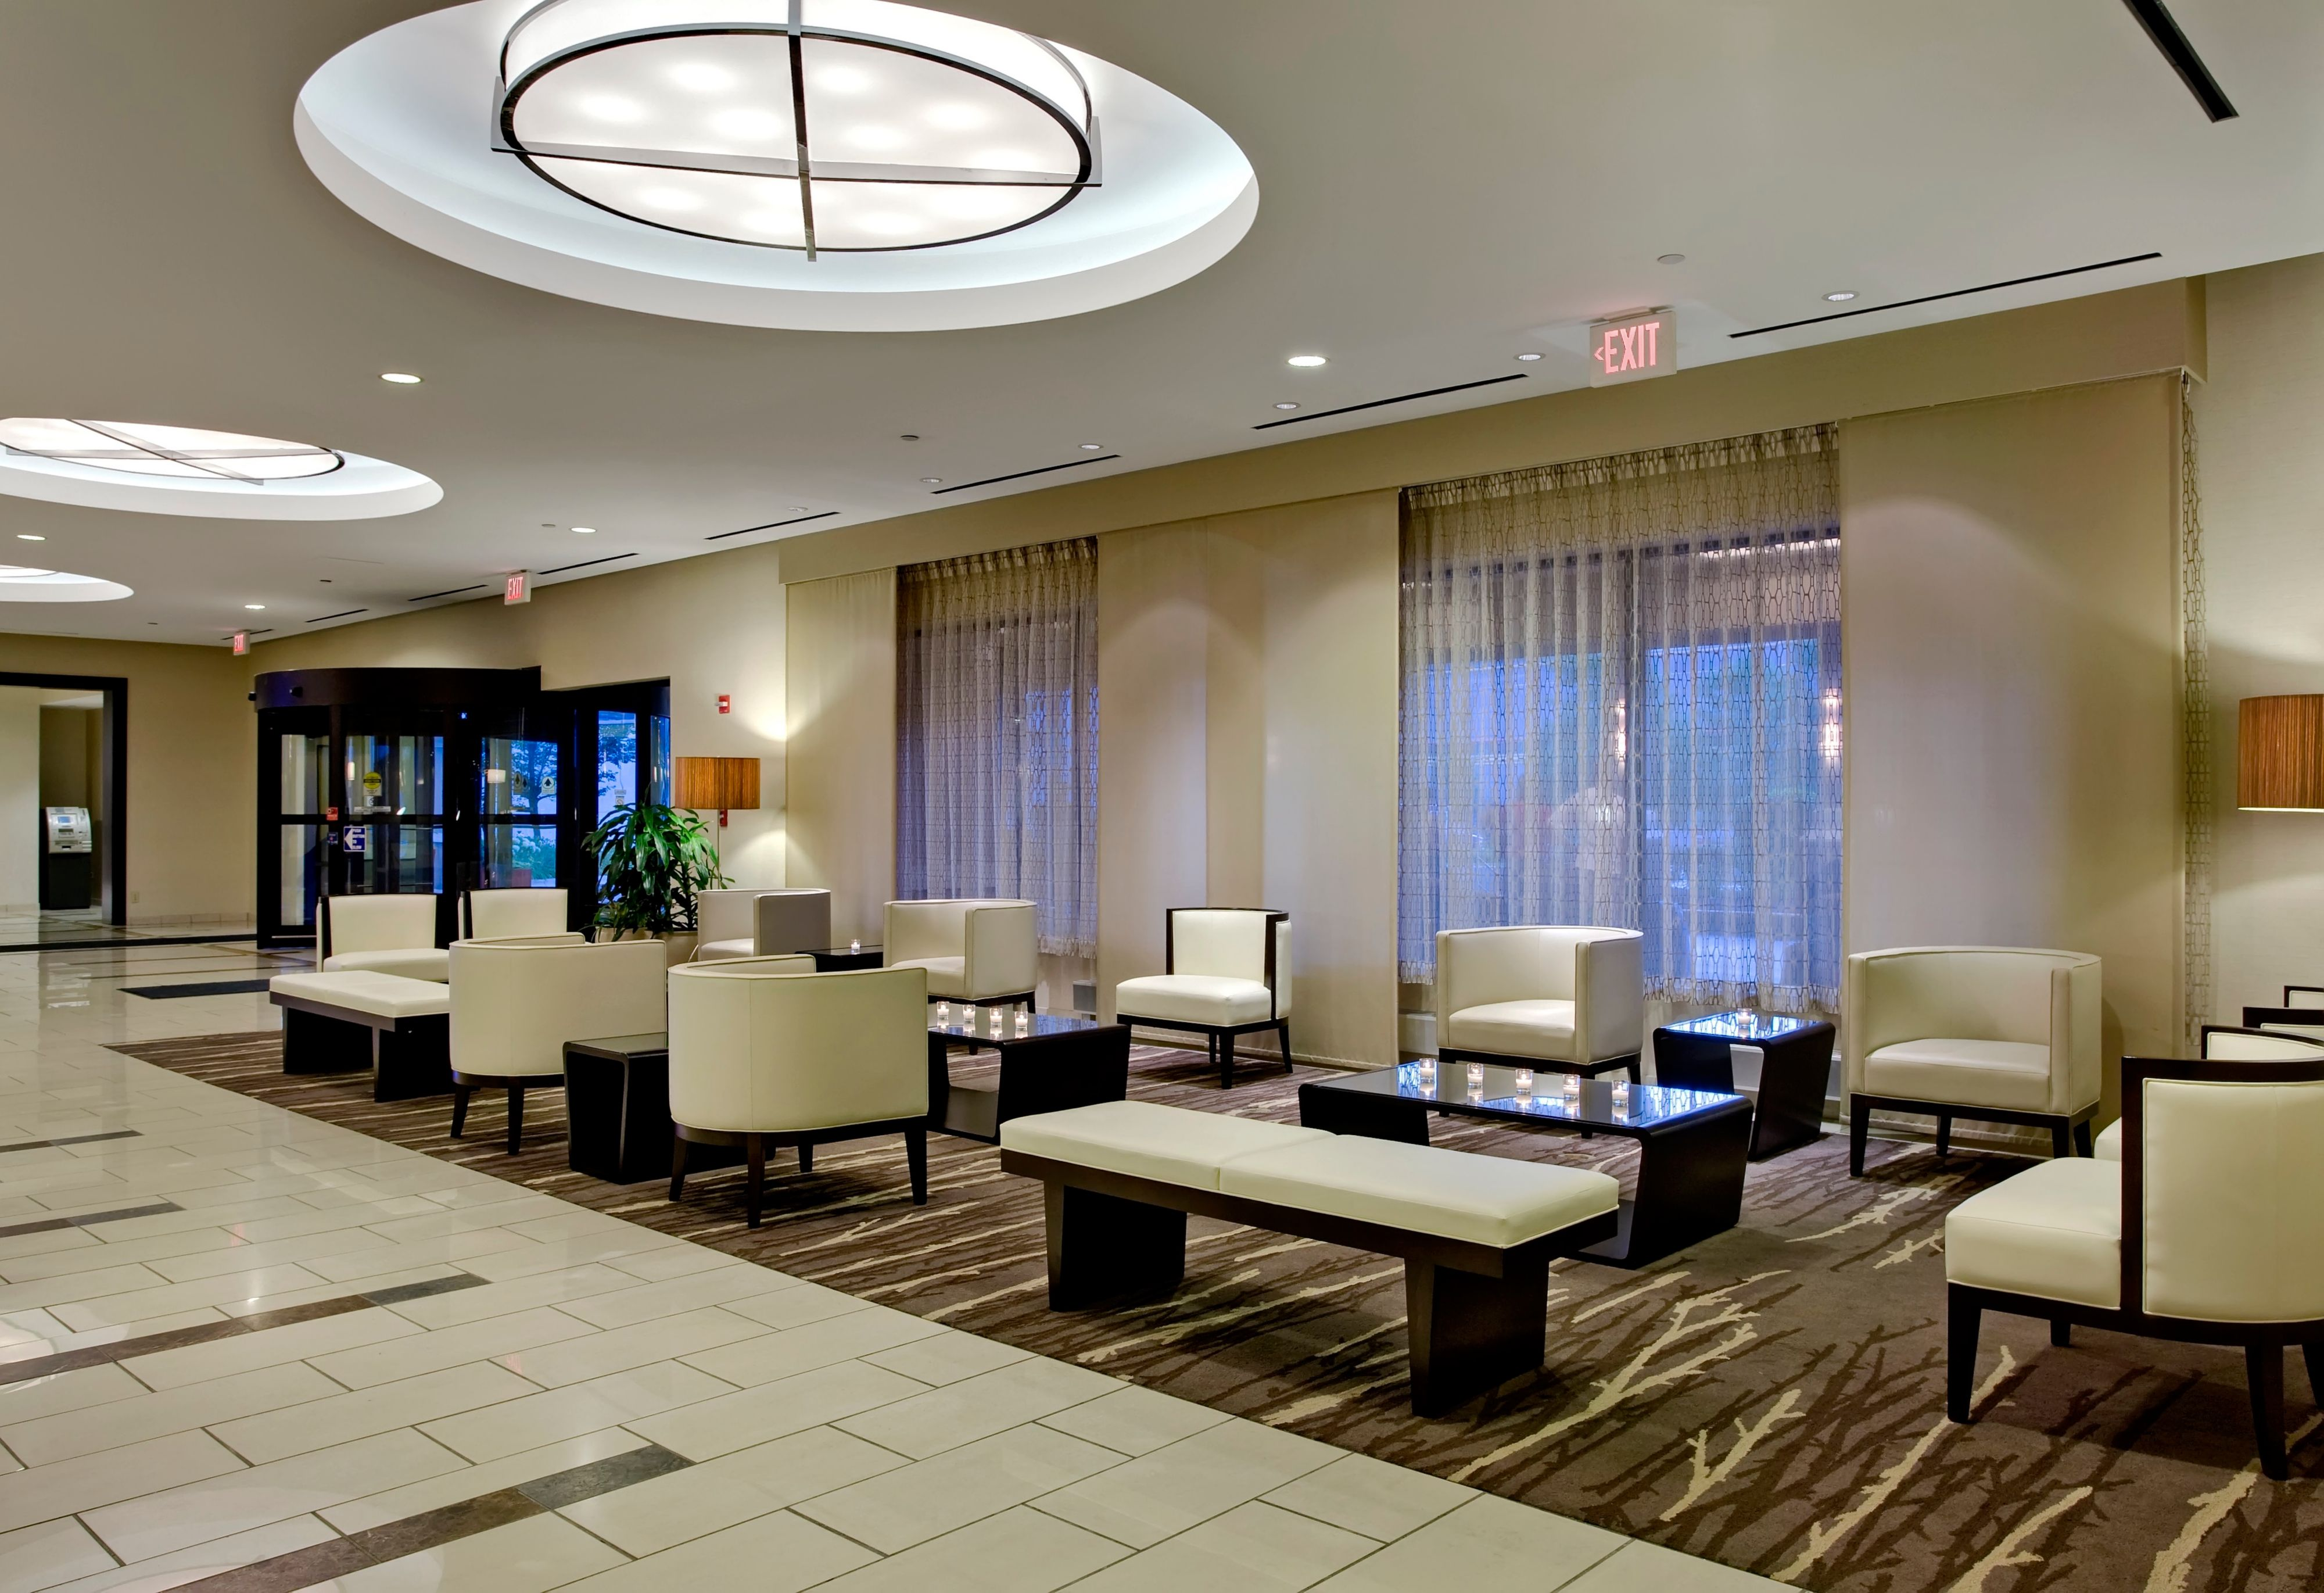 Crowne Plaza Chicago Ohare Hotel & Conf Ctr image 7